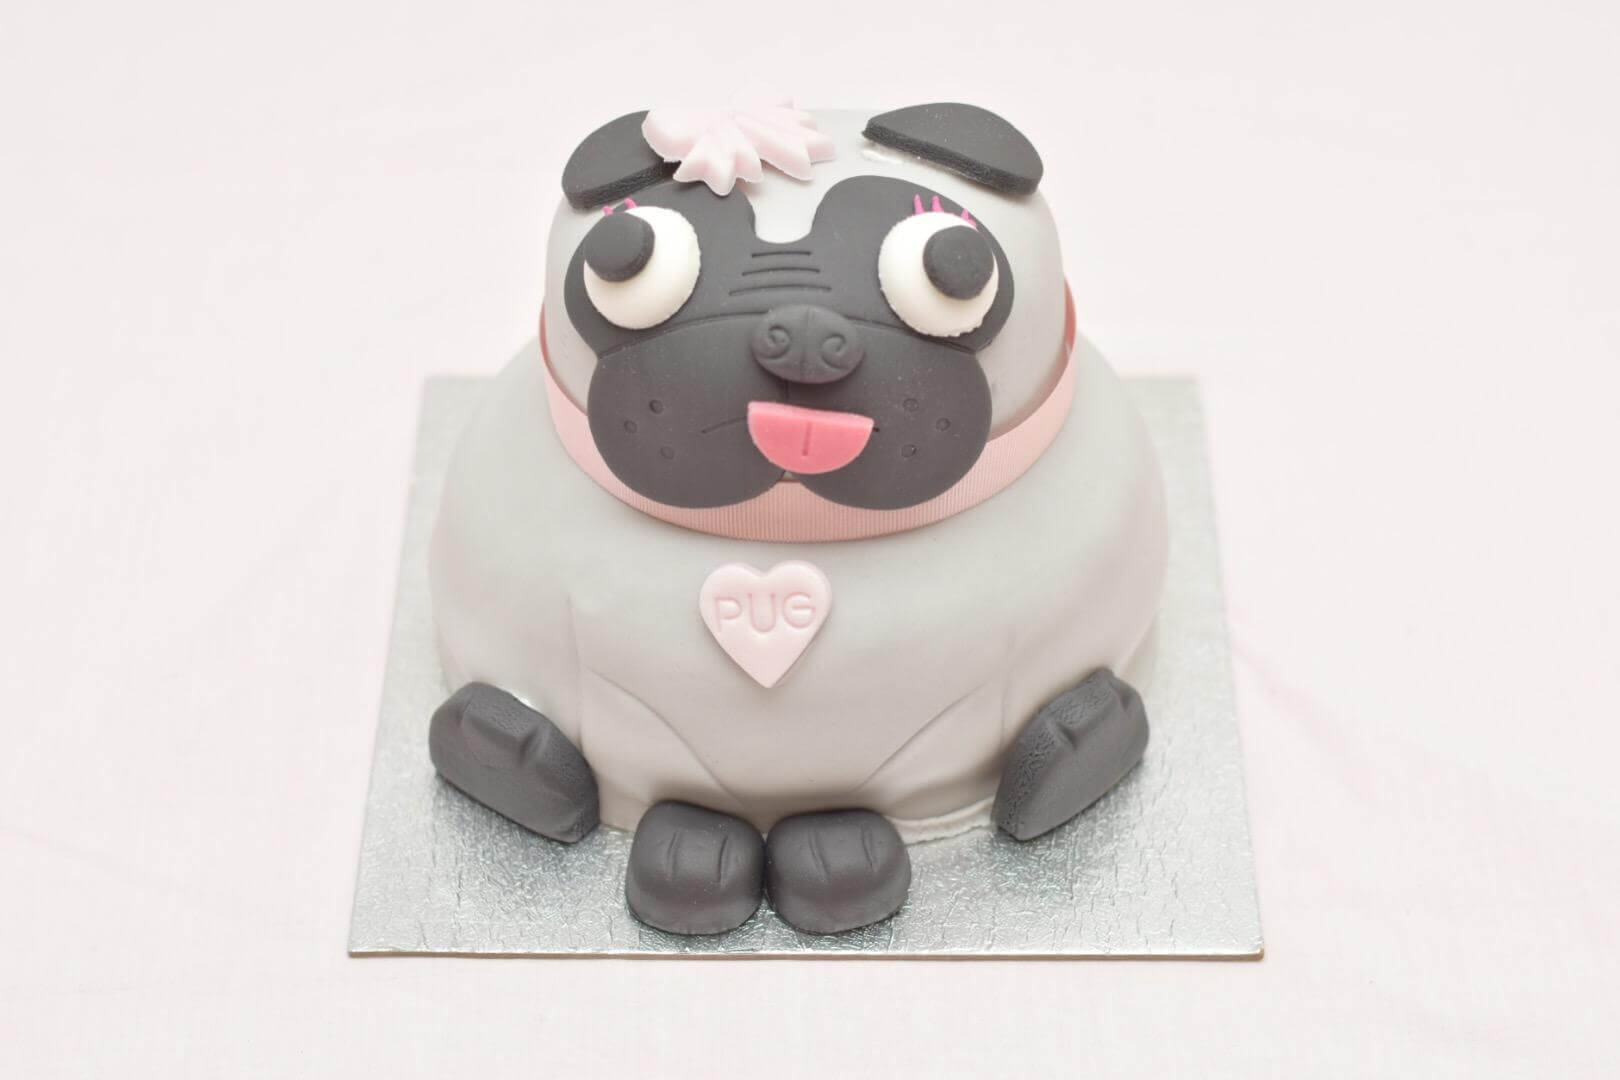 A Pug Birthday Cake From Asda The Inspiration Edit